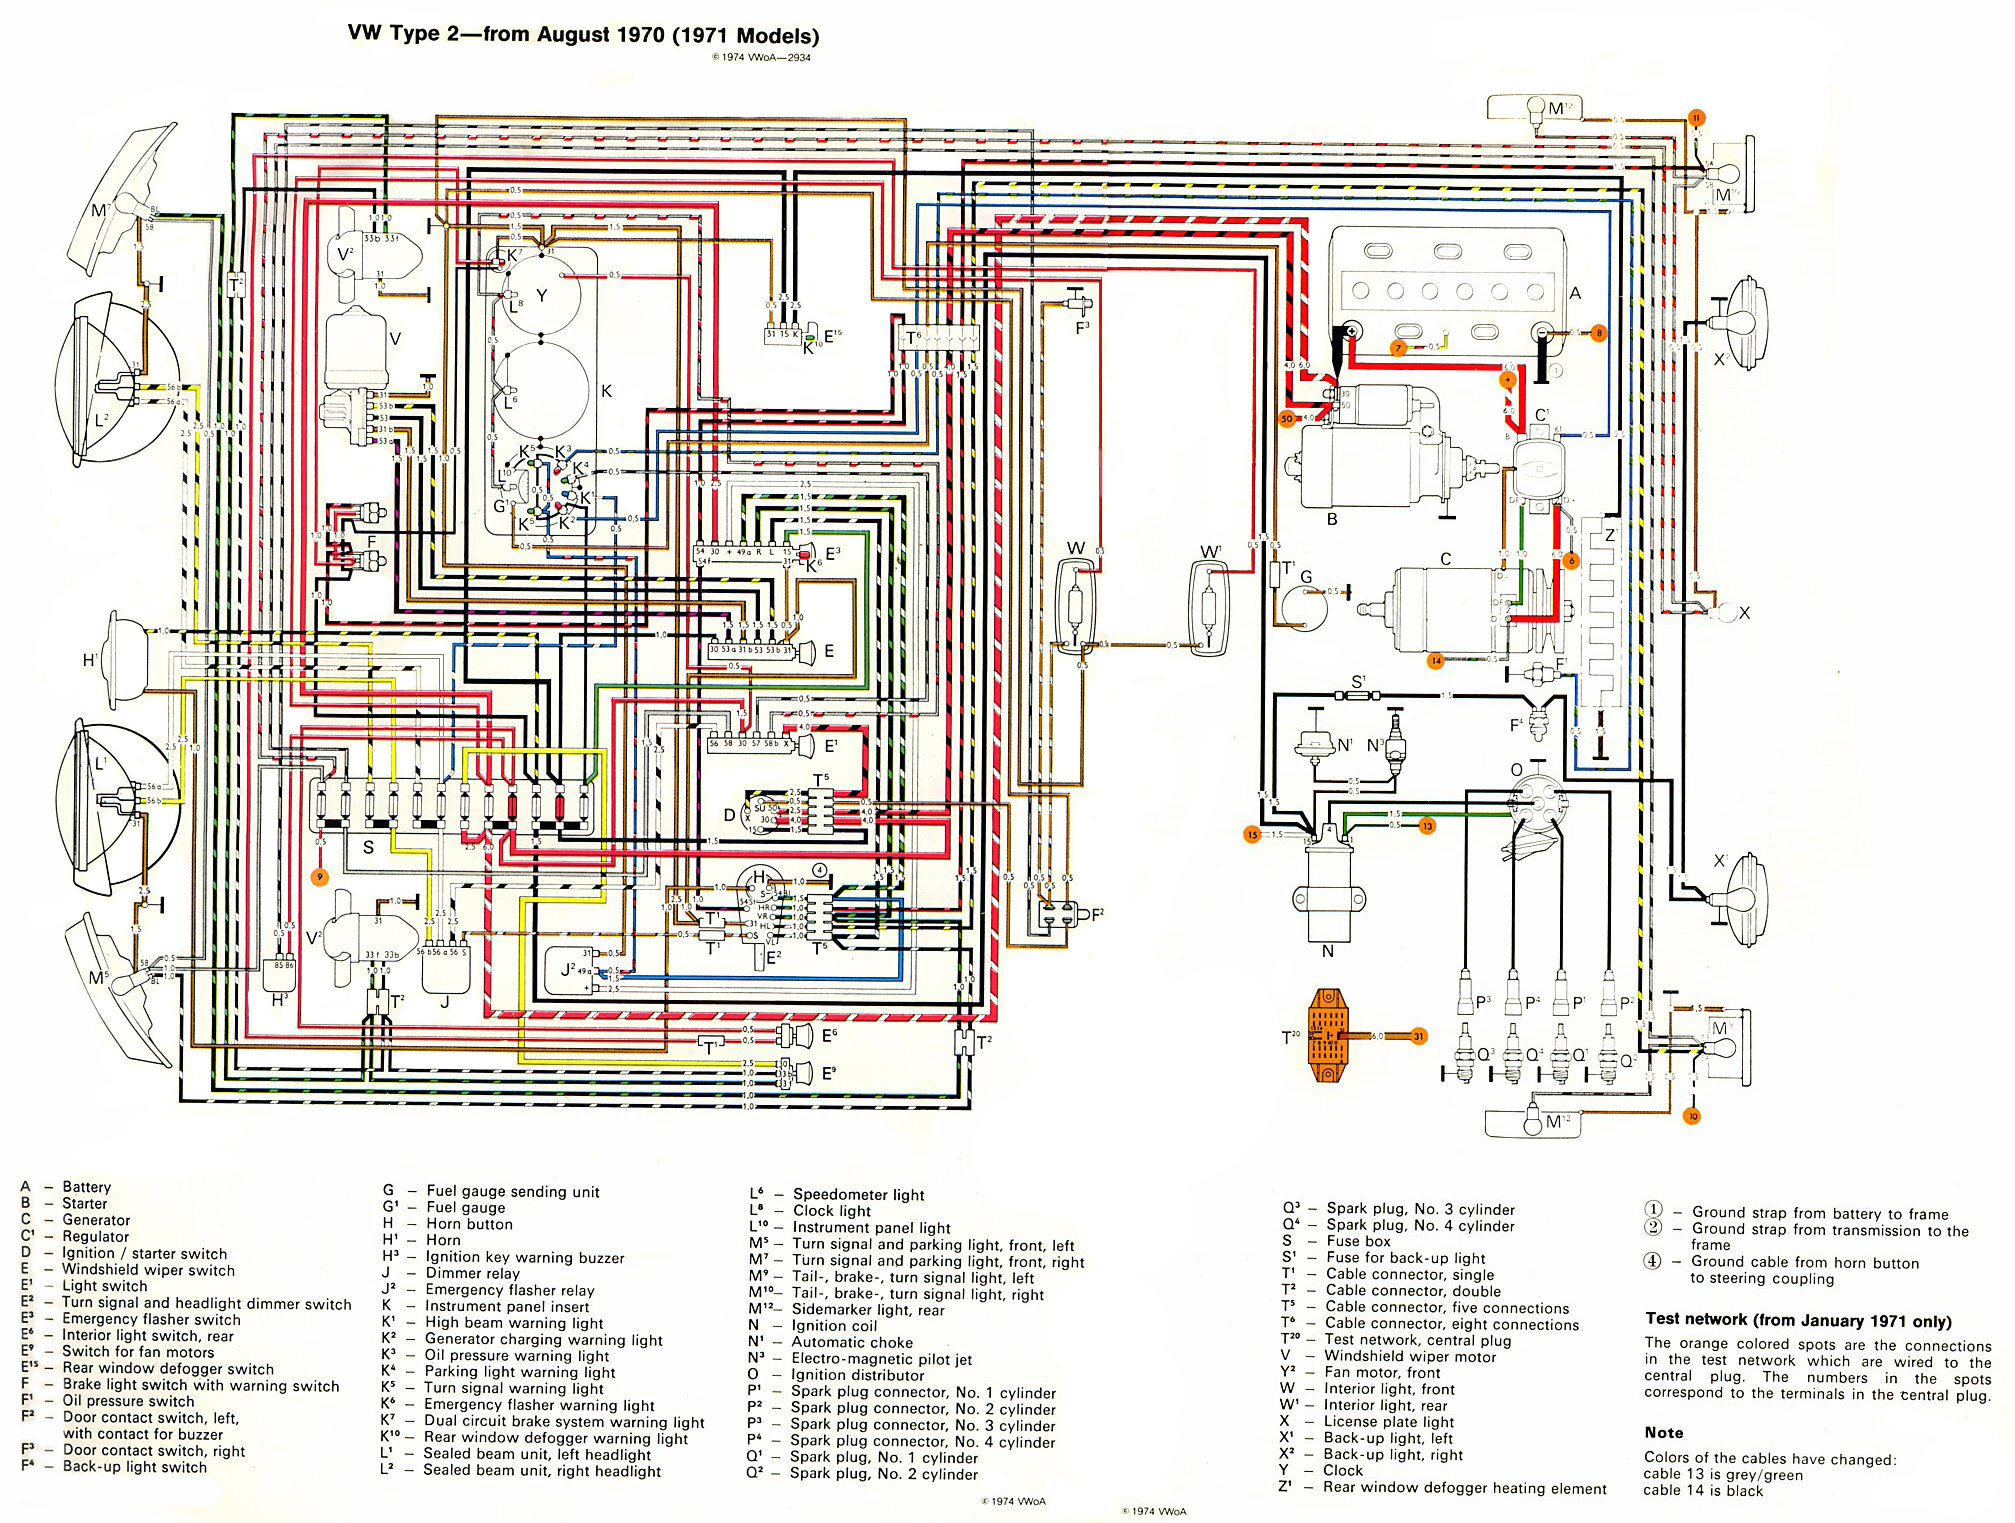 baybus_71_fixed volkswagen t2 wiring diagram volkswagen wiring diagrams instruction vw caddy wiring diagram pdf at bakdesigns.co